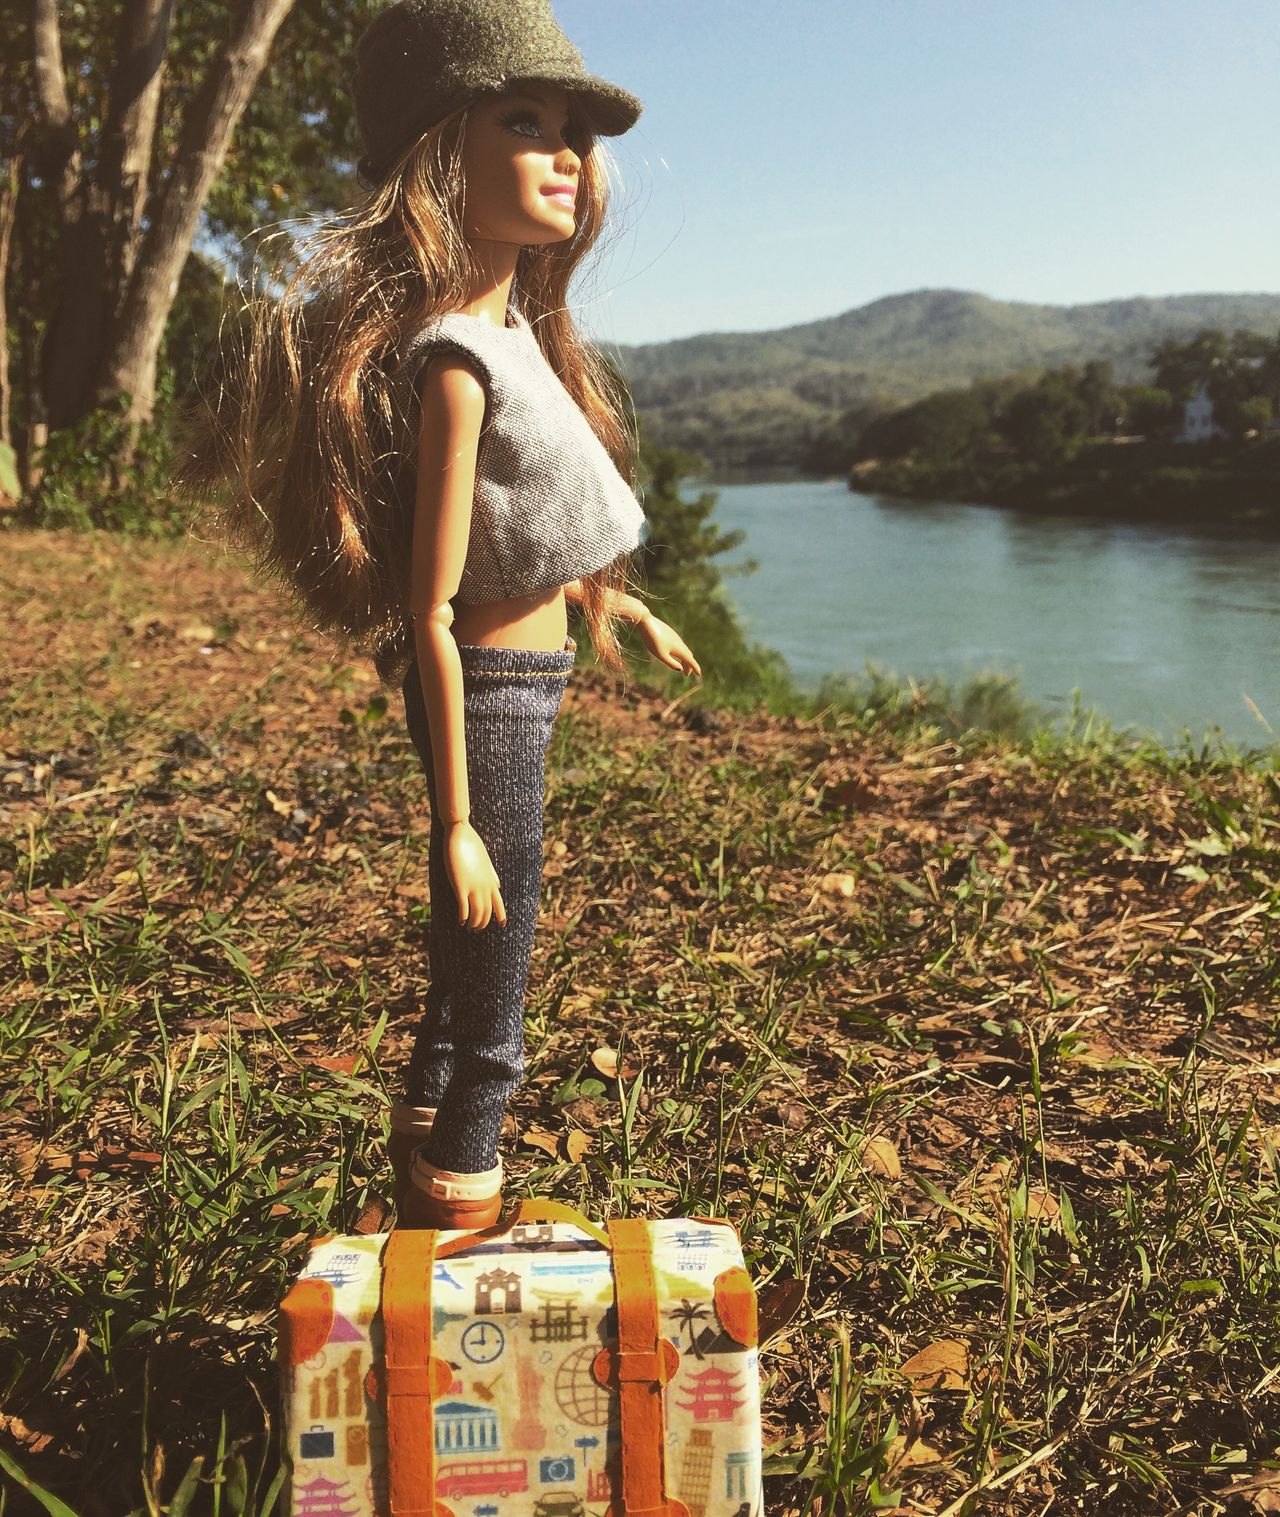 Barbie Barbie Collector Beauty In Nature Casual Clothing Doll Photography Grass Leisure Activity Lifestyles Mountain Nature Tranquil Scene